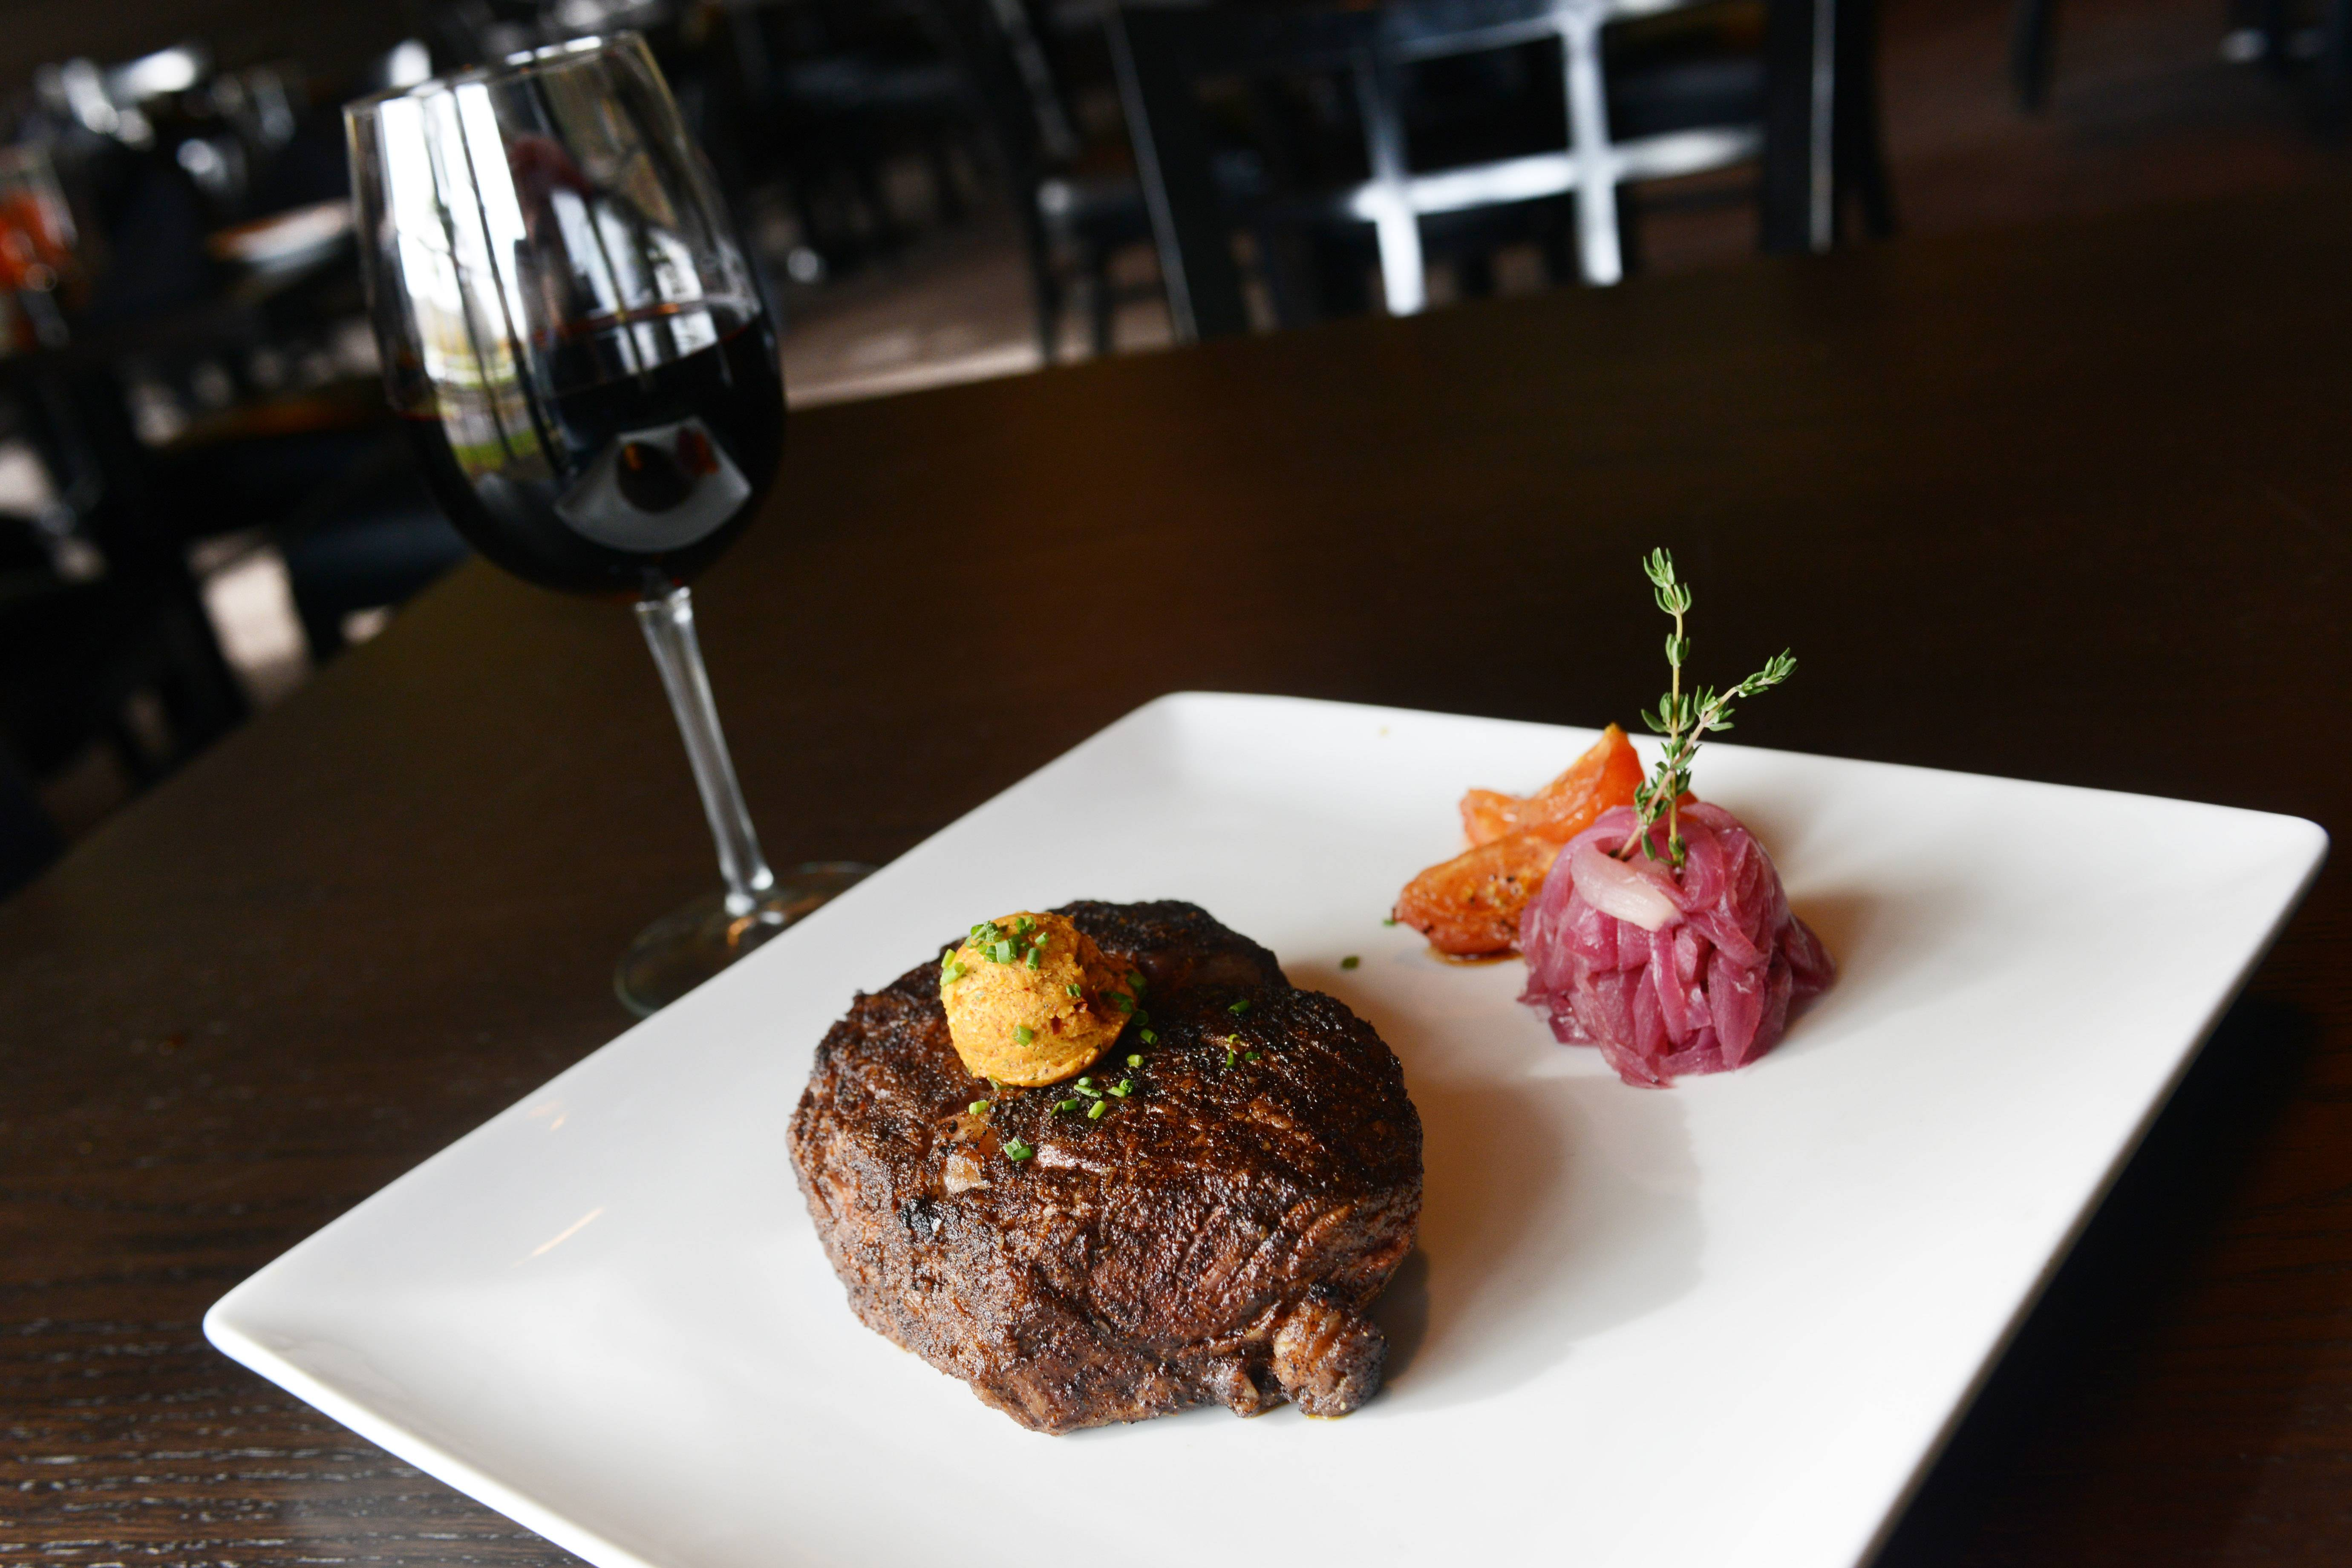 Coffee-rubbed Delmonico steak is one of the many cuts of beef served at Ditka's Restaurant in Arlington Heights.